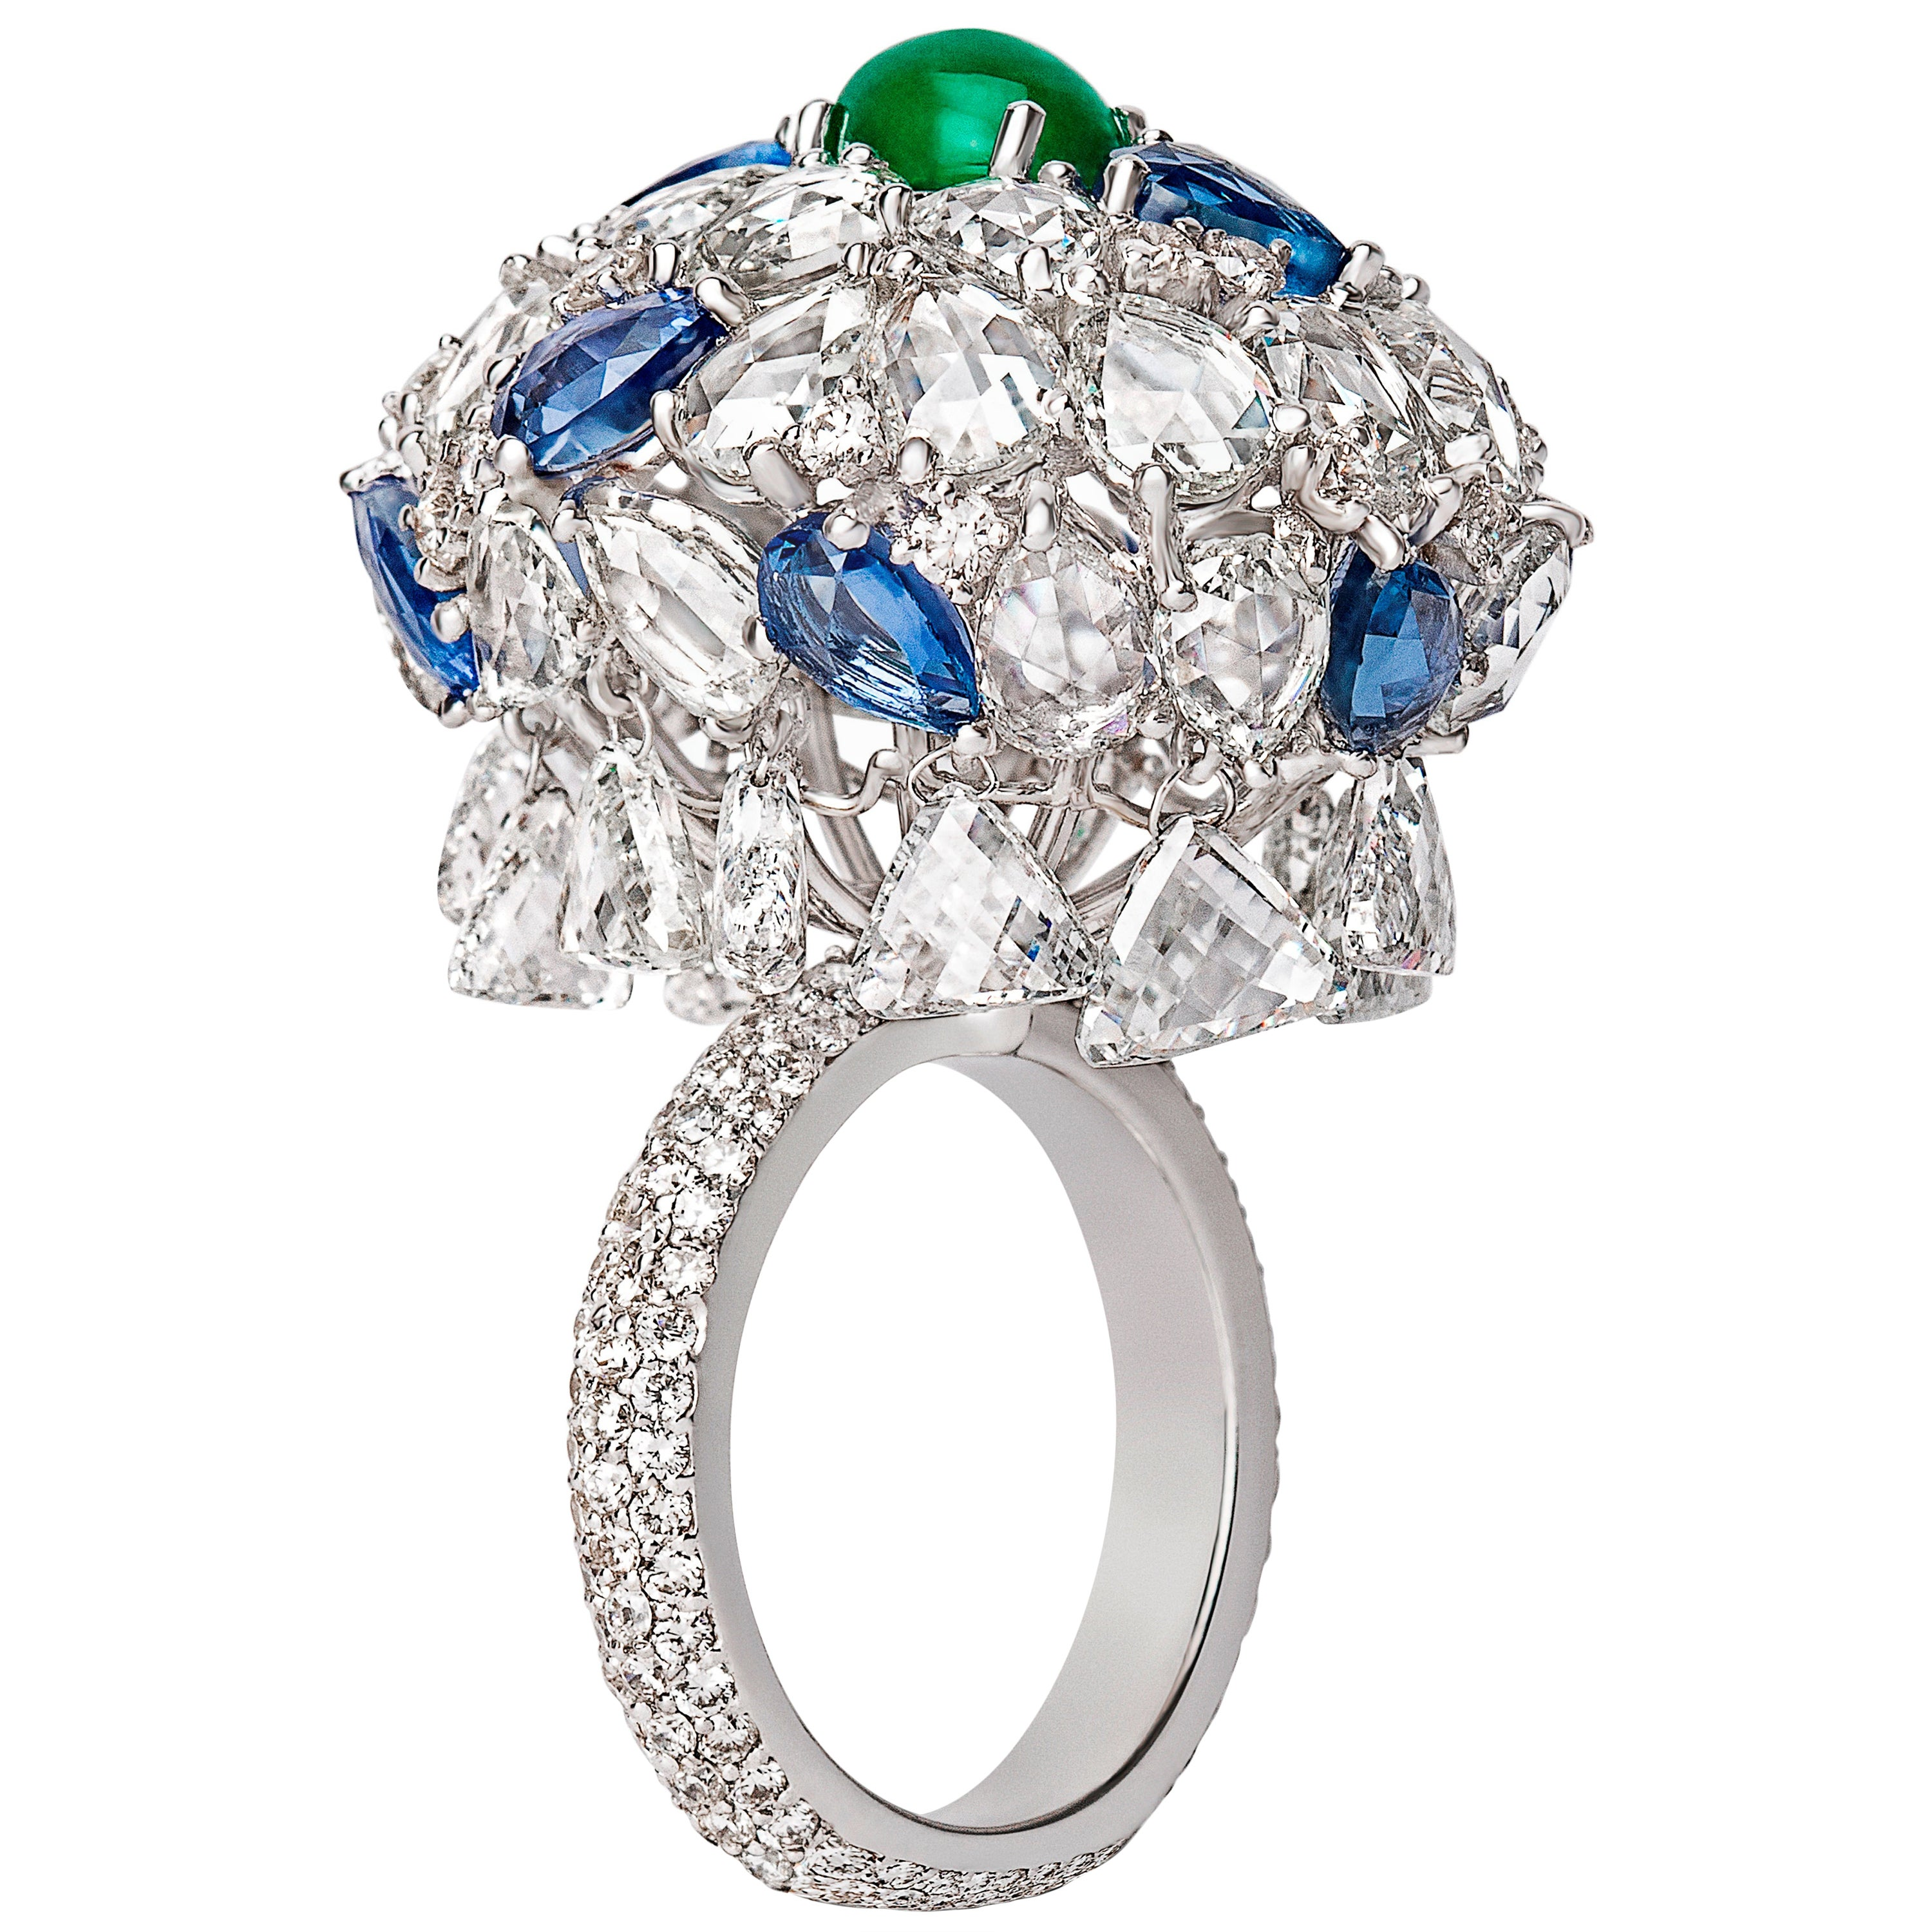 18 Karat White Gold, Rose Cut, Emerald and Sapphire Cocktail Ring